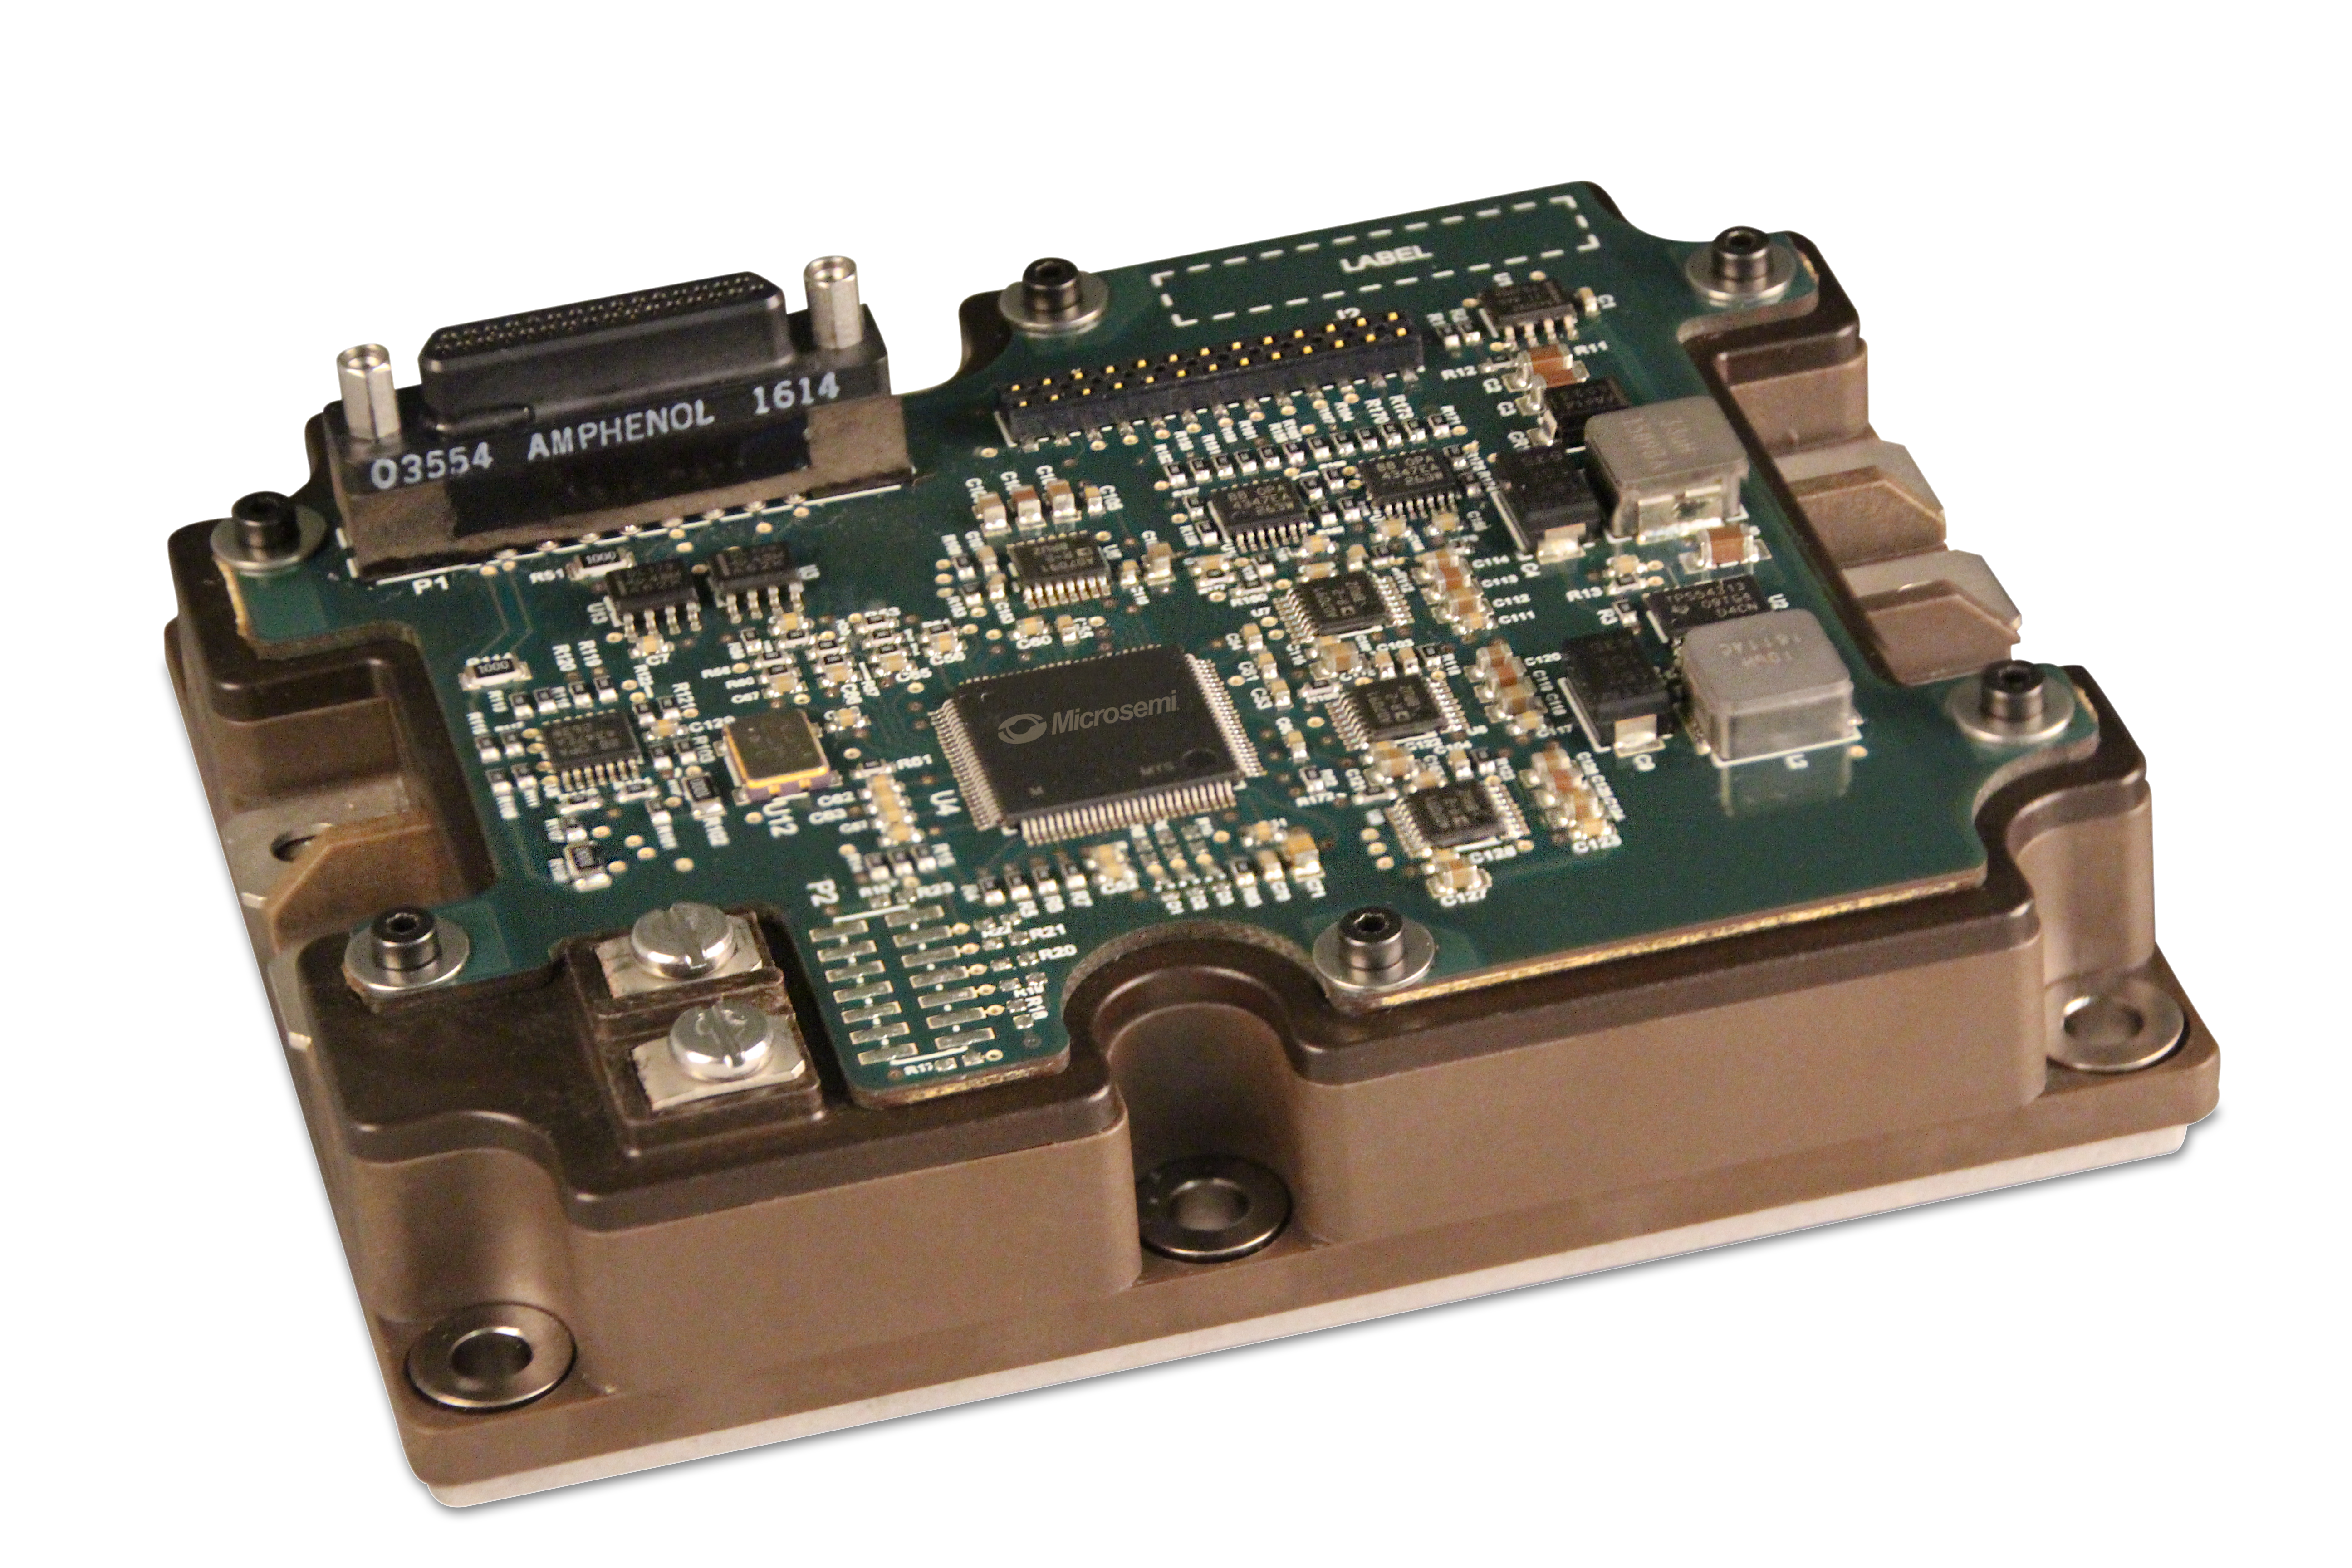 Applications Commercial Aviation Microsemi Buy Integrated Electronics Analog And Digital Circuits Systems 2 The Flagship Product For Flight Control Actuation System Is Power Core Module Pcm Targeted Specifically At More